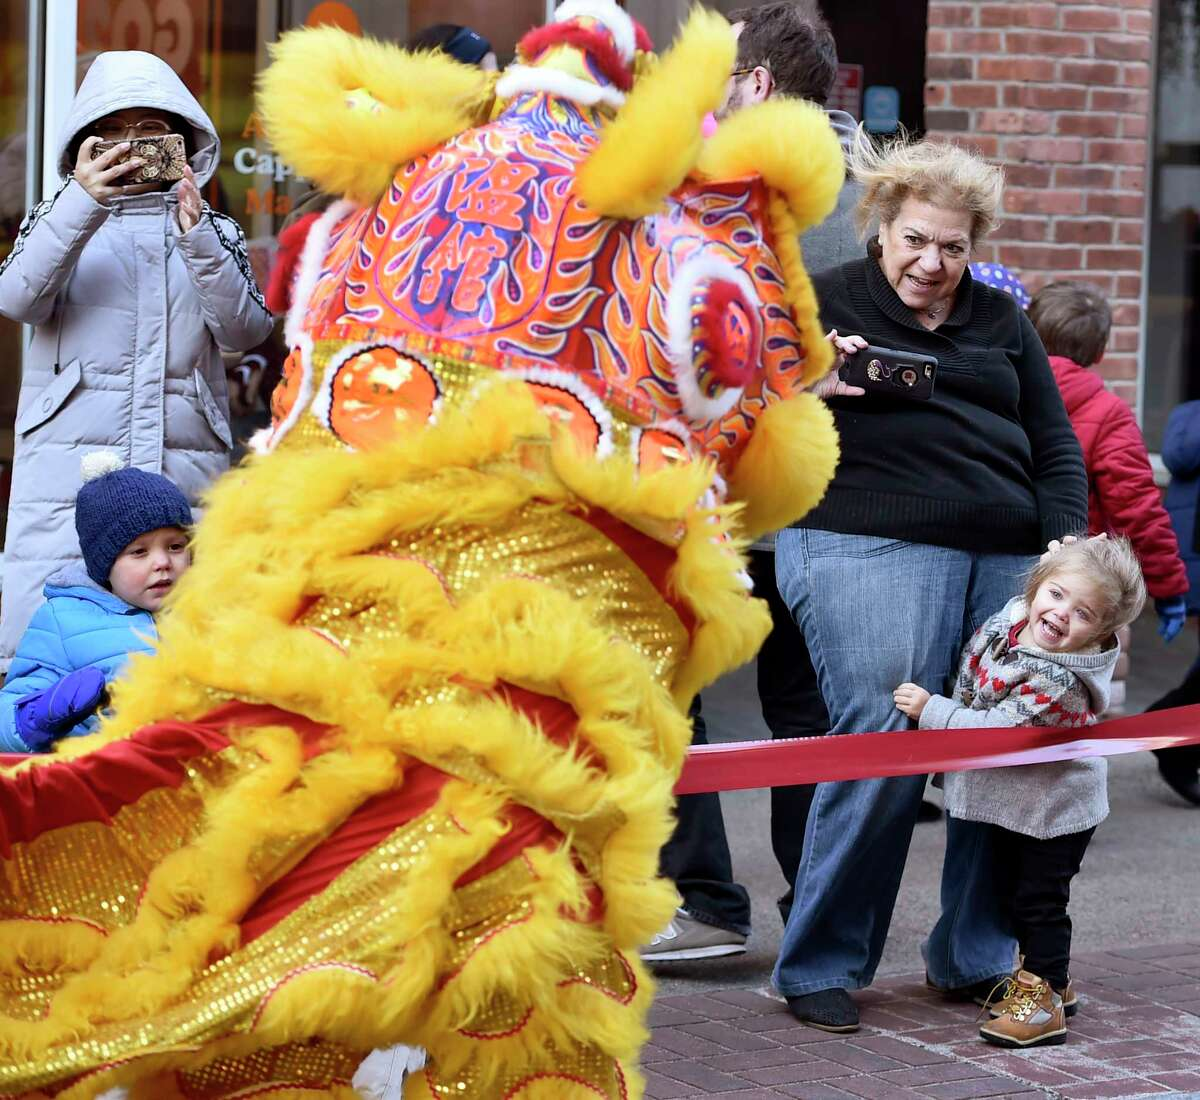 New Haven, Connecticut - February 8, 2020: A woman and a child enjoy the sight of a Wan Chi Ming Hung Gar dancing lion during Lunarfest, celebrating the Chinese New Year, the Year of the Rat, and the Chinese culture is highlighted by New Haven's 9th Annual Lion and Dragon Dance Parade that winds down Church Street towards Whitney Avenue to the the Hong Kong Market and Great Wall Restaurant. The dancing Lions are performed by the Wan Chi Ming Hung Gar Institute's lions of New York City, and are a symbol of good luck to people and area merchants. The dragons are handcrafted by area schools and the public.